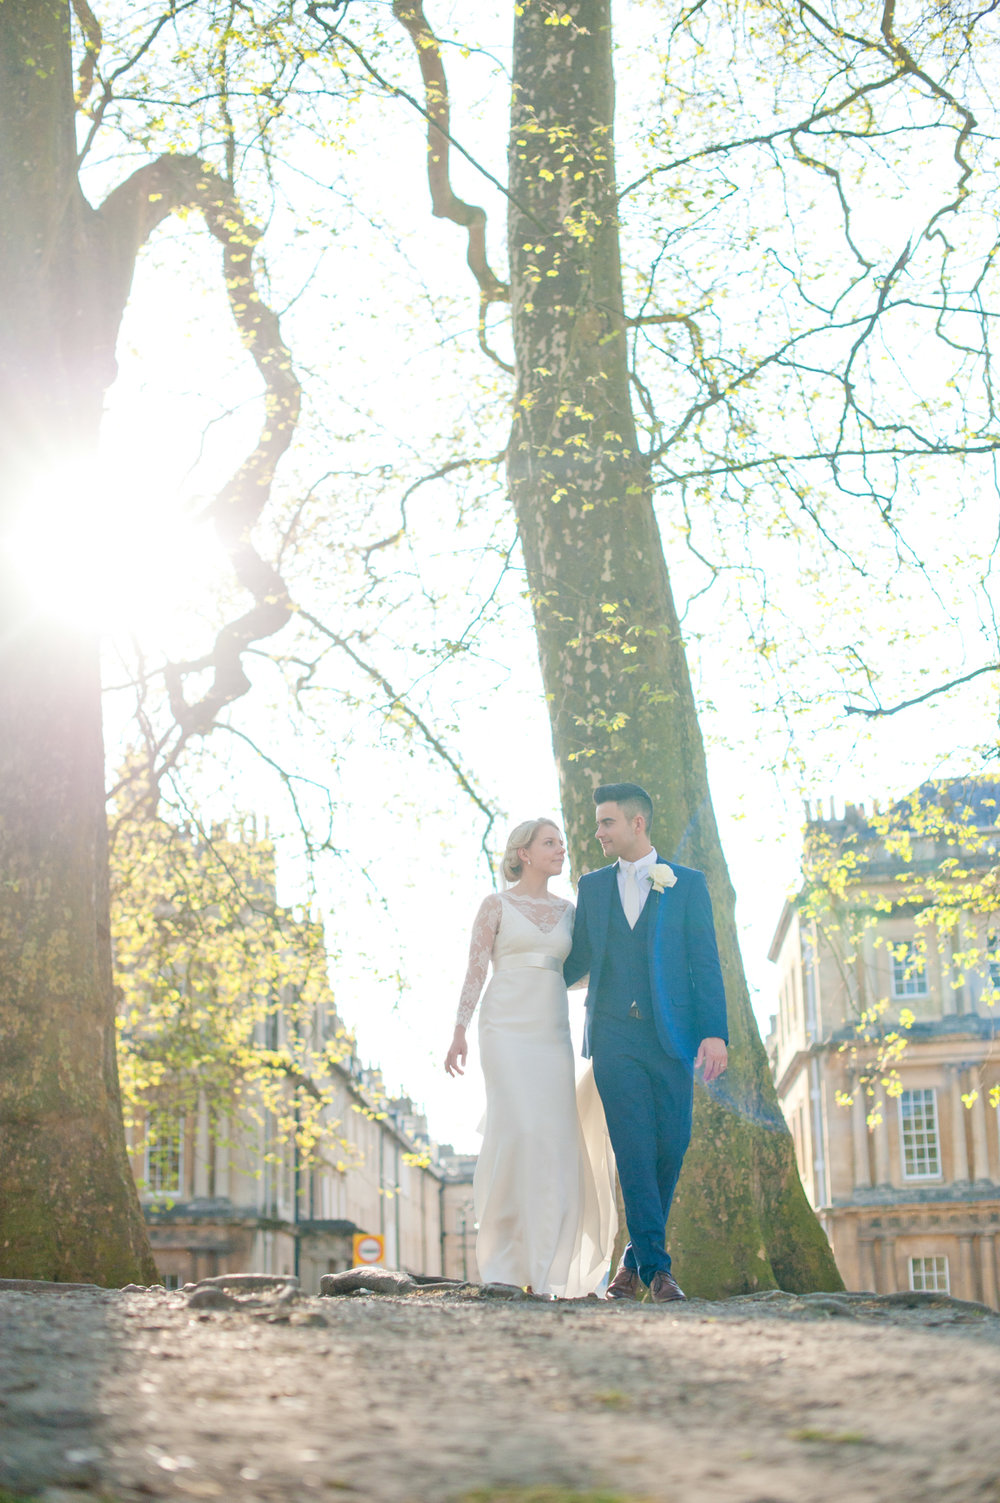 We went to the Royal Crescent to get couple's shots. The sun had dropped some making massive bright blowouts on the photos. They look good if you shoot them right.